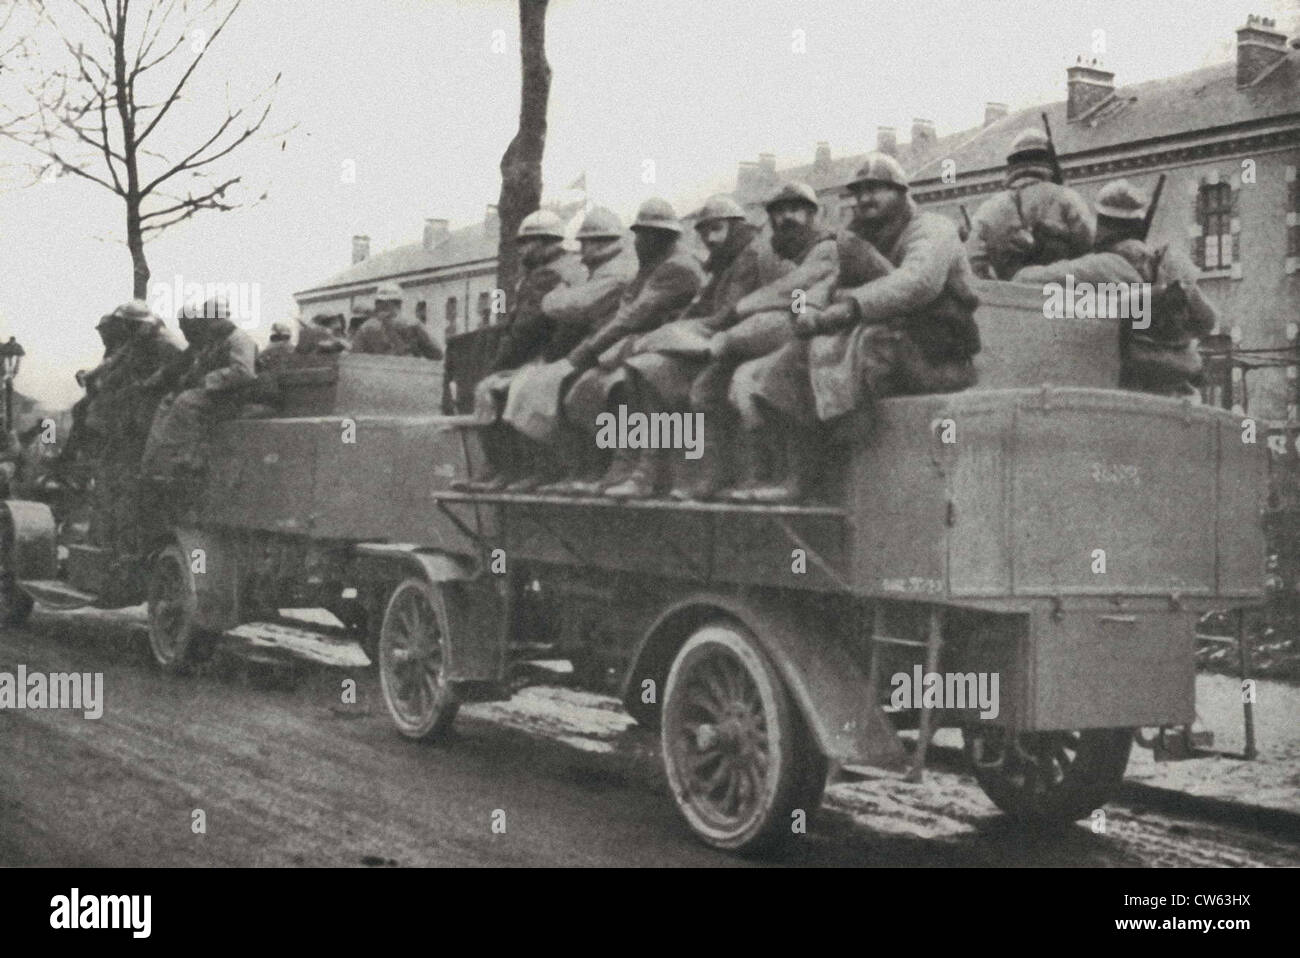 Trucks carrying reinforcements to the Battle of Verdun - Stock Image